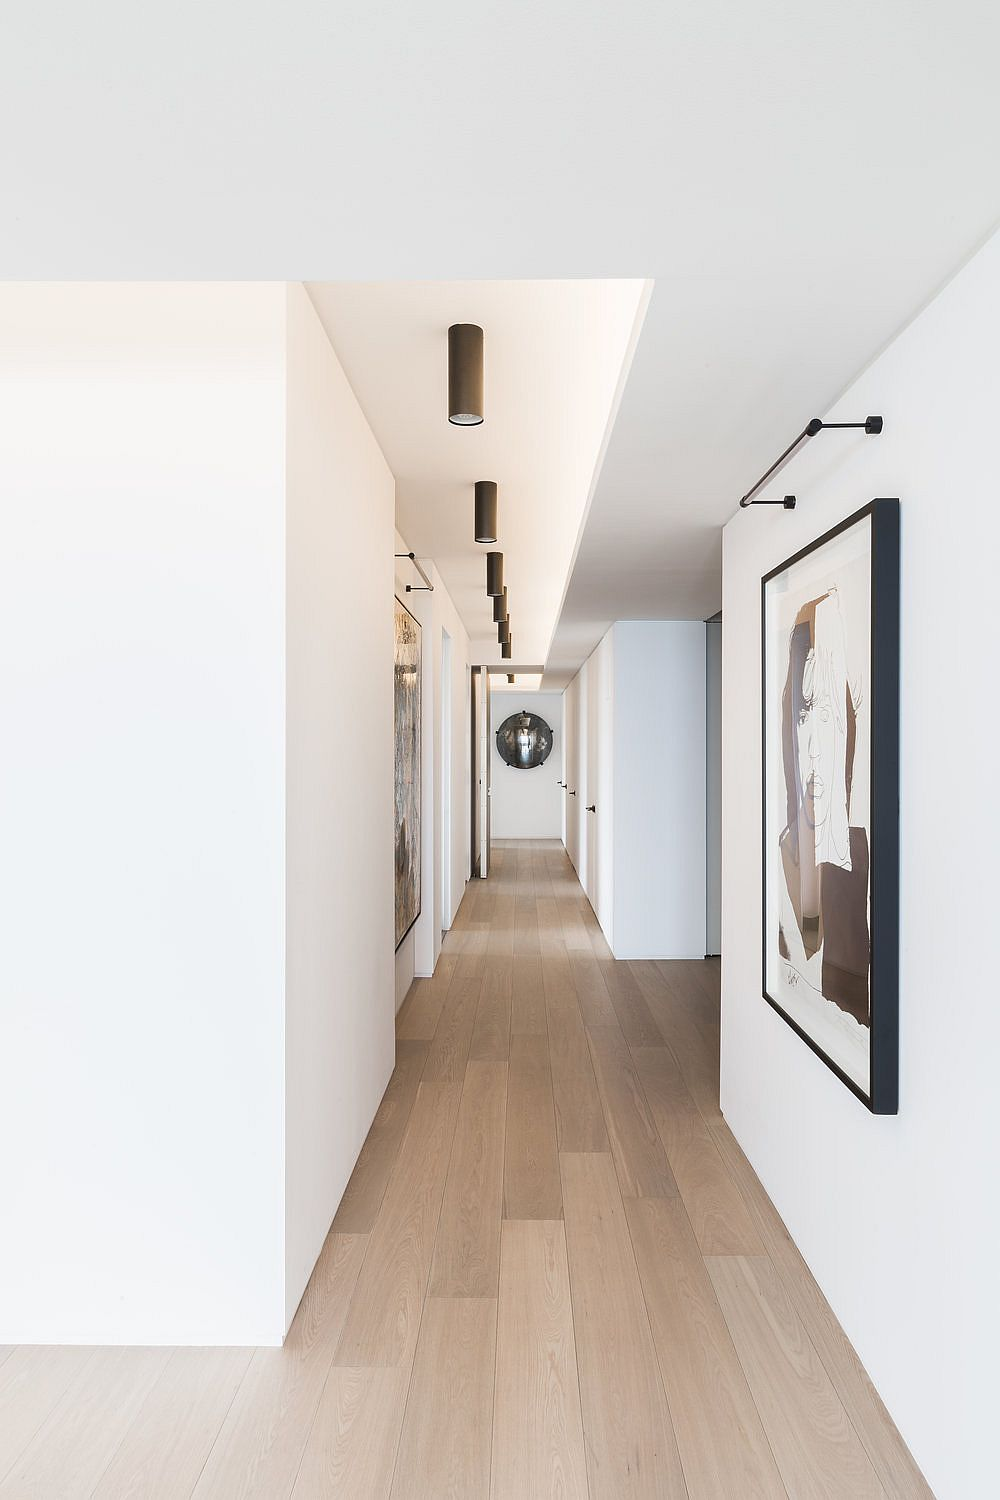 Gallery-style long corridor inside the Water Tower Flat in Chicago